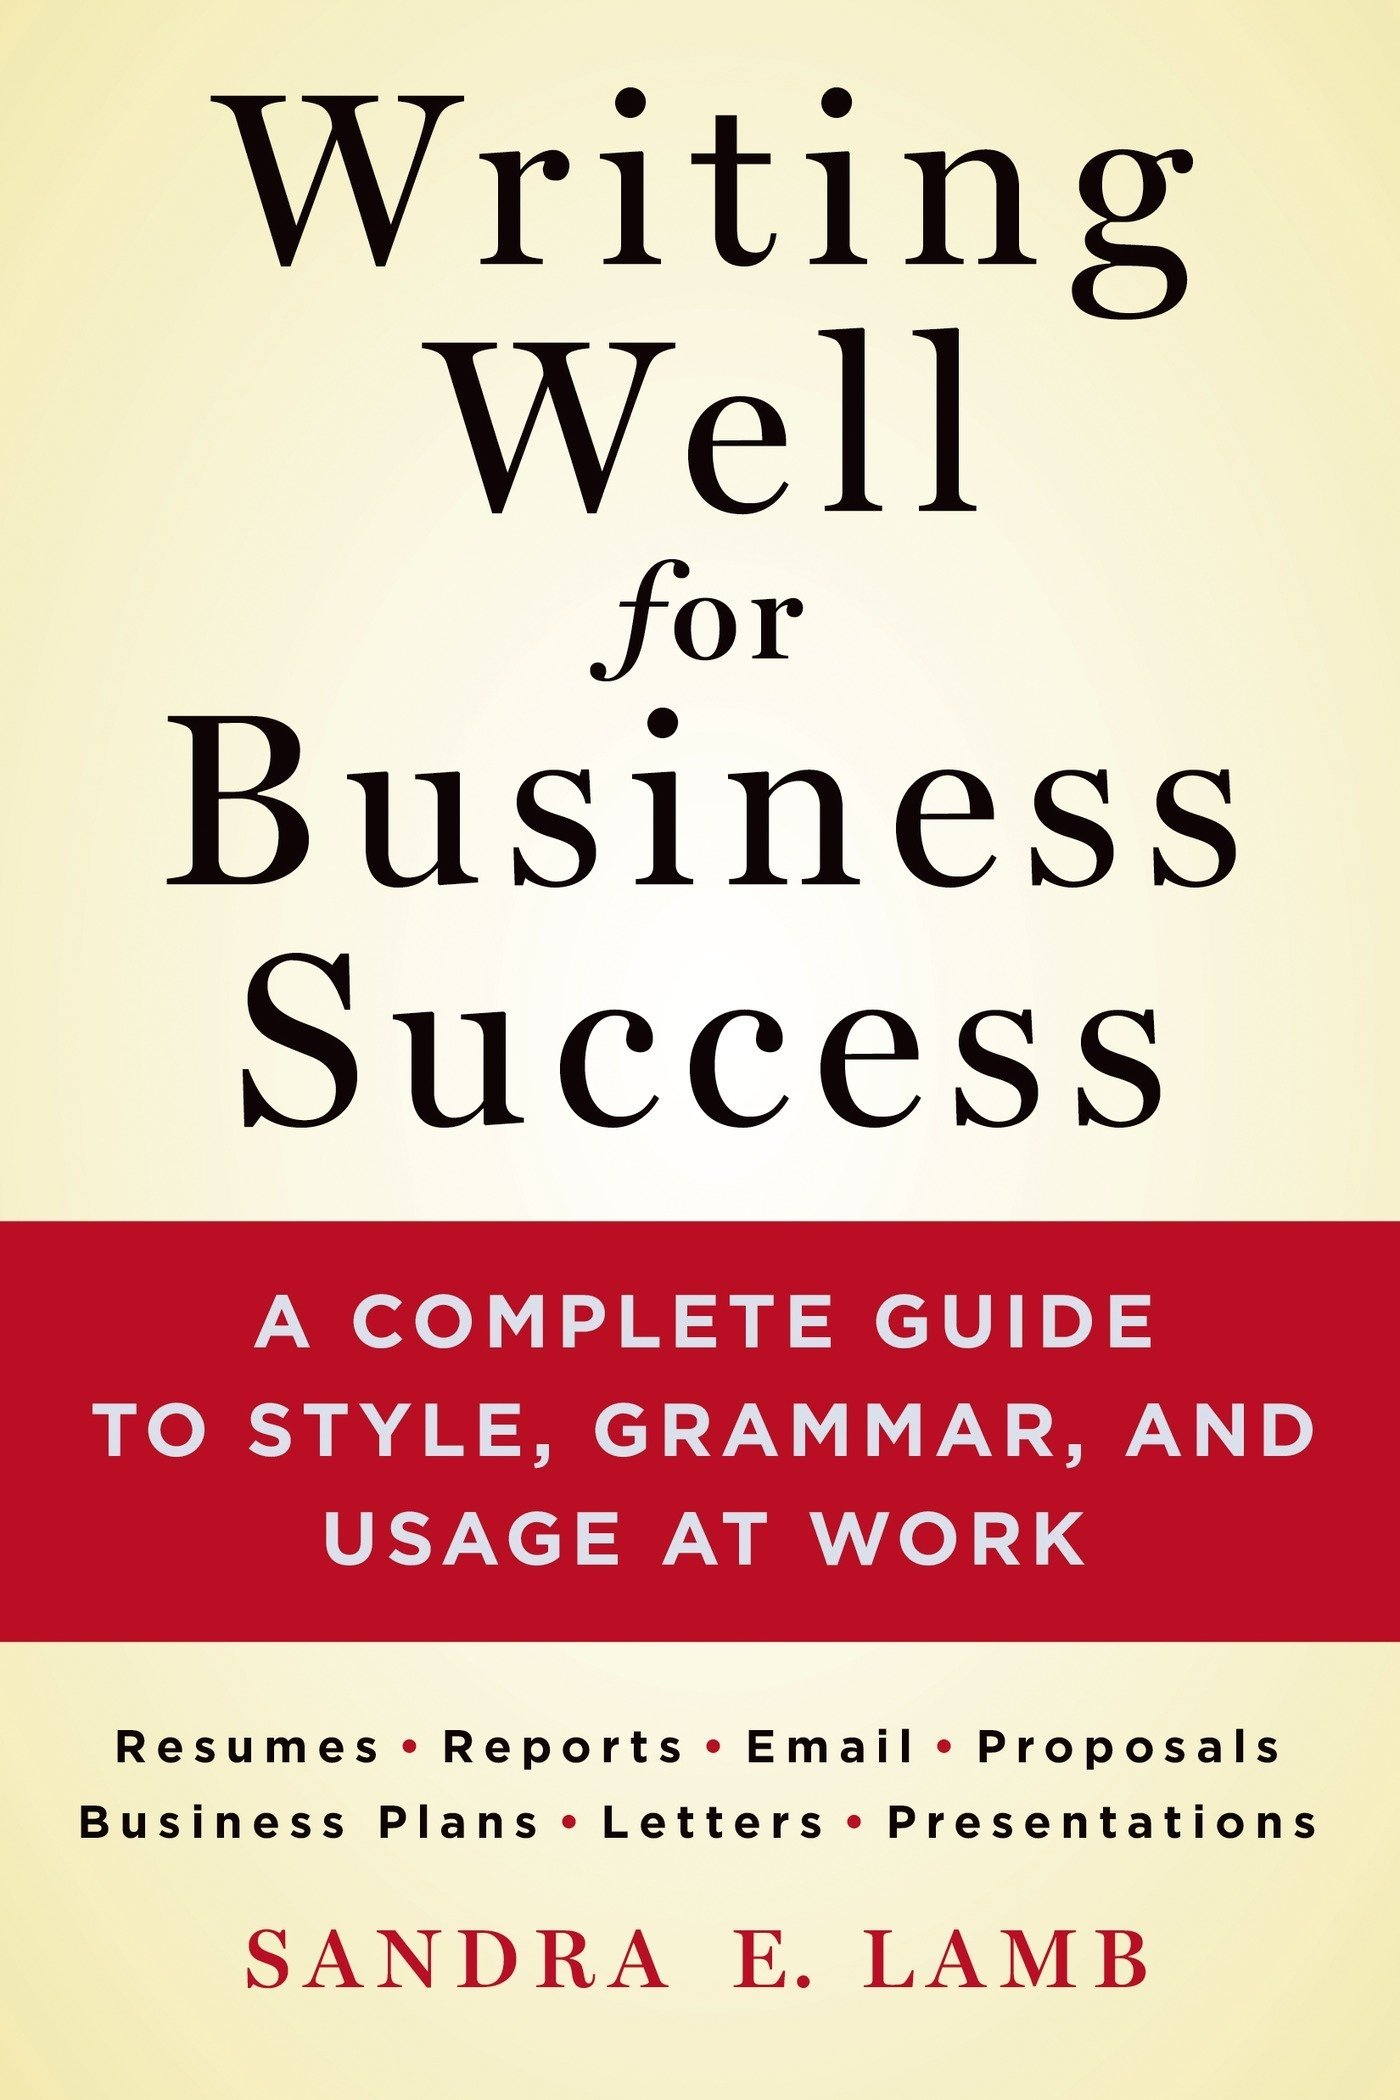 Writing Well for Business Success: A Complete Guide to Style, Grammar, and Usage at Work ebook